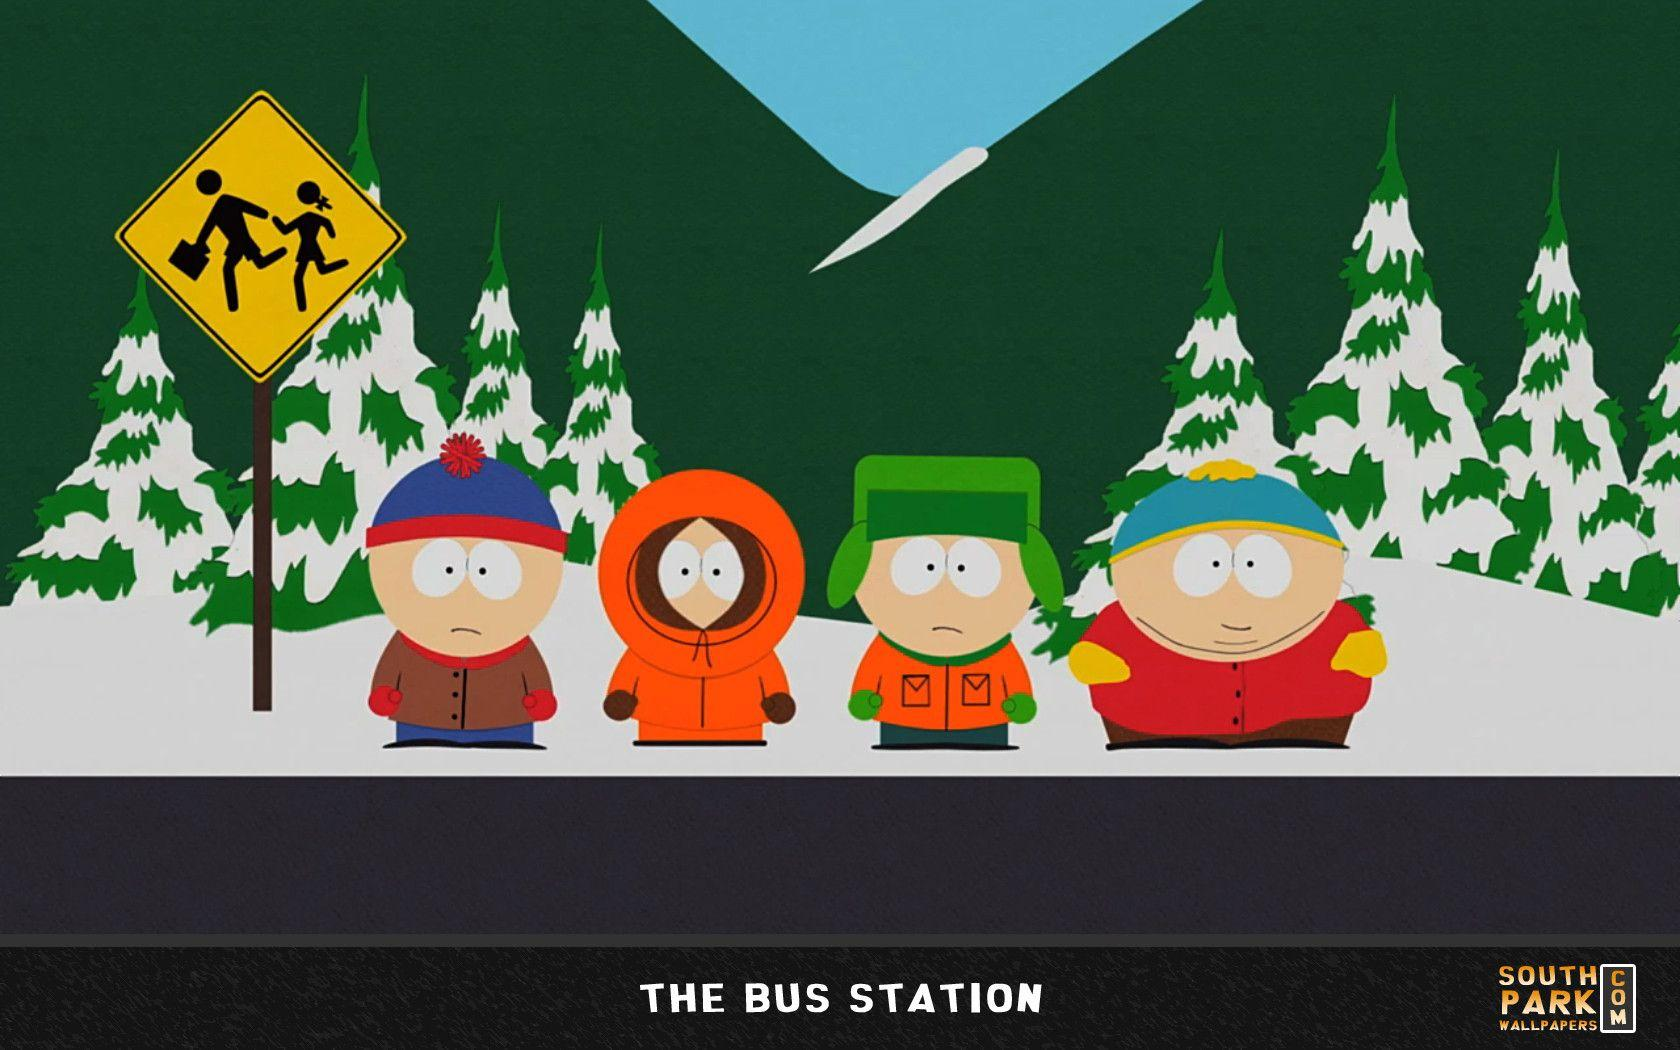 South Park Wallpapers Hd Image & Pictures